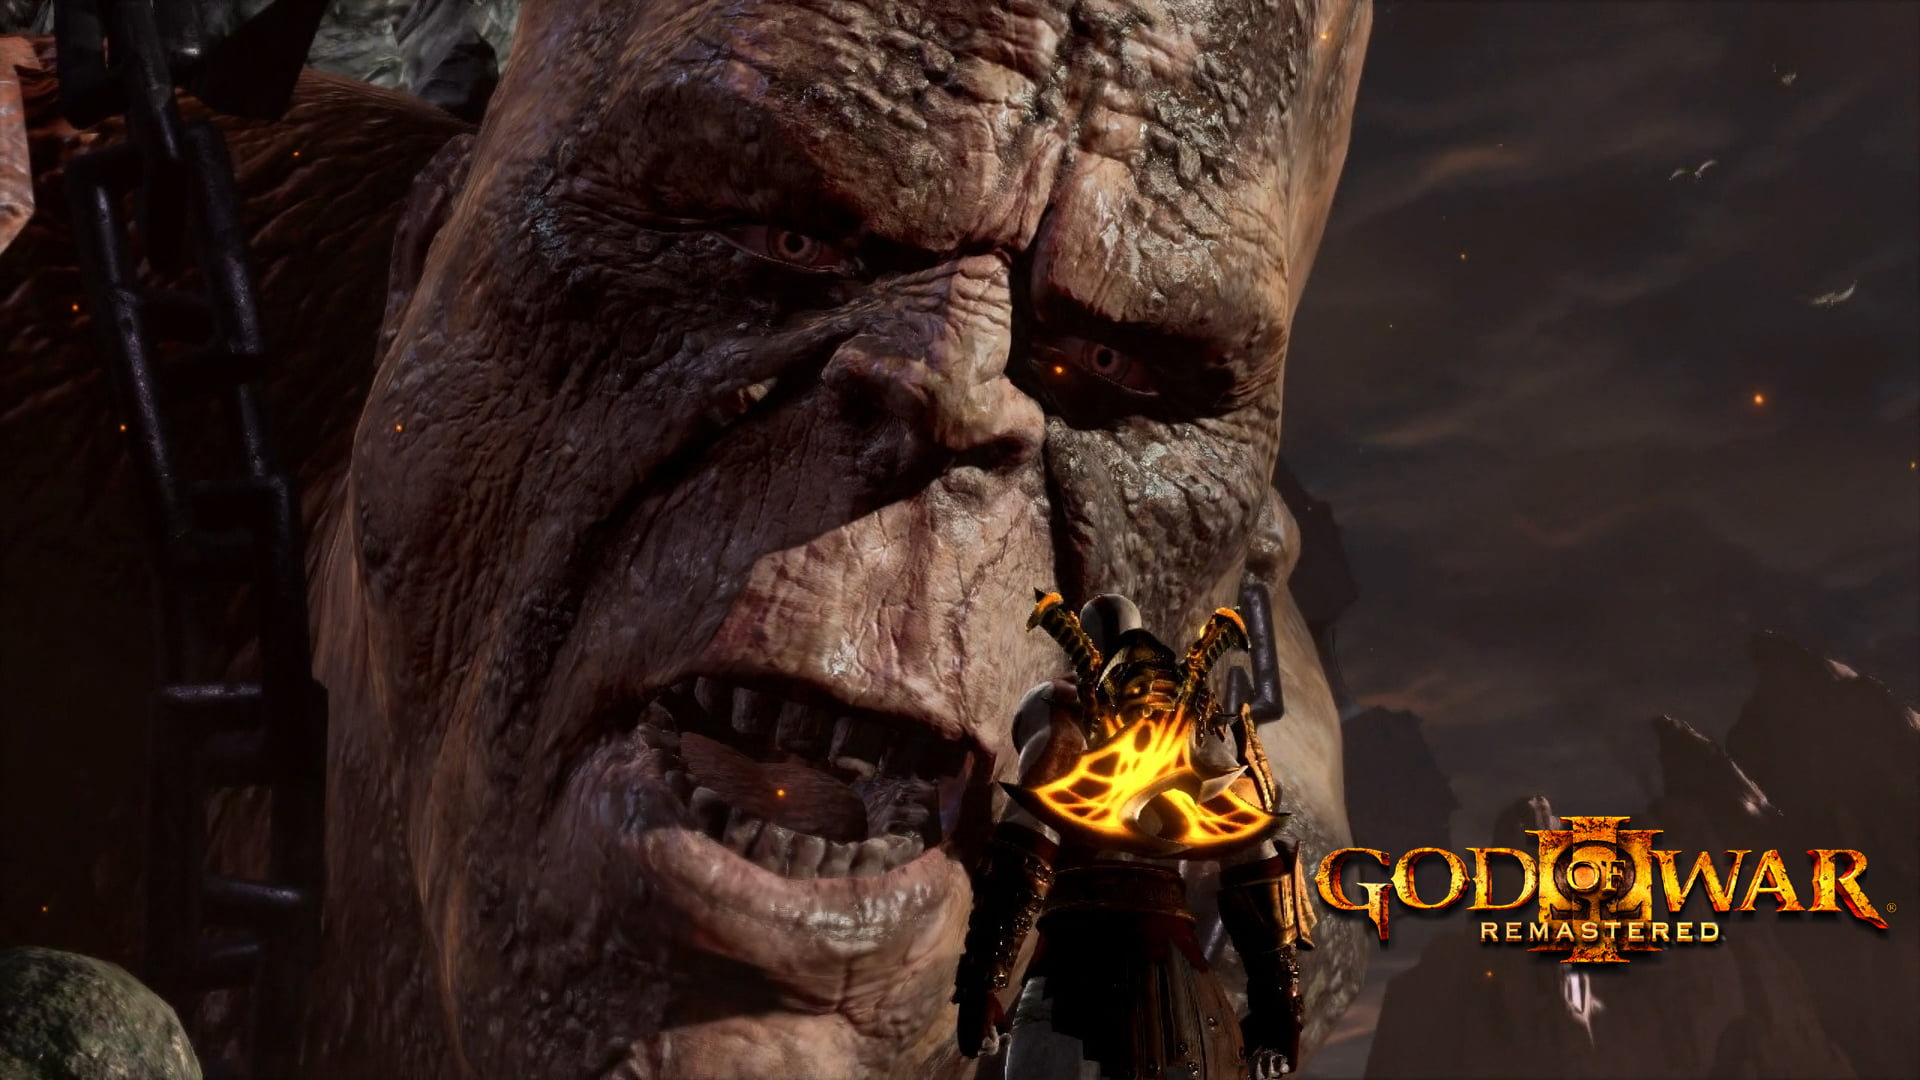 Photo of God of War III Remastered 10 Minute Gameplay Trailer